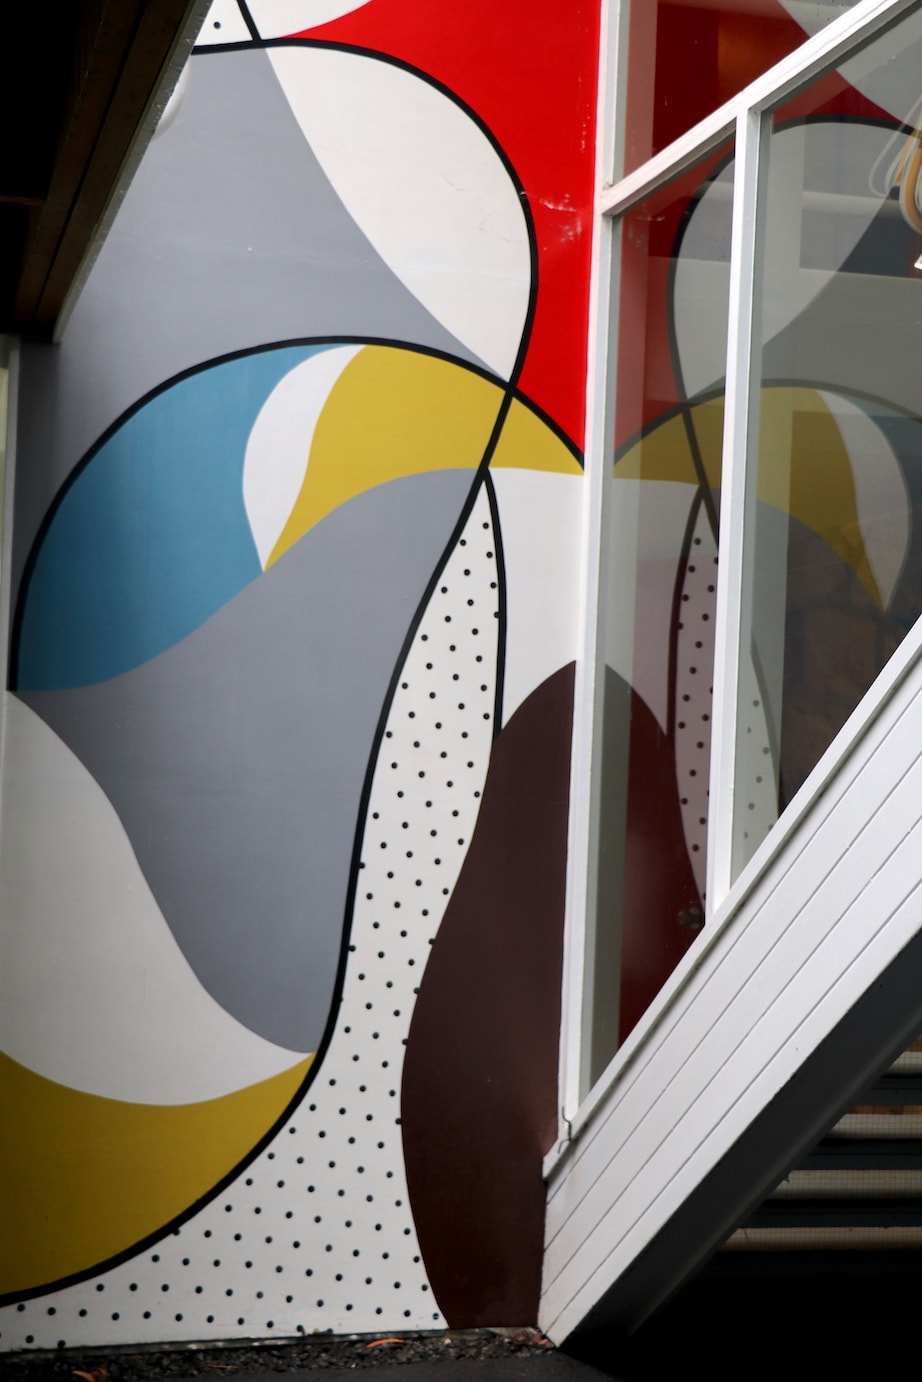 Rose Seidler House mural and stairs image Katrina Holden